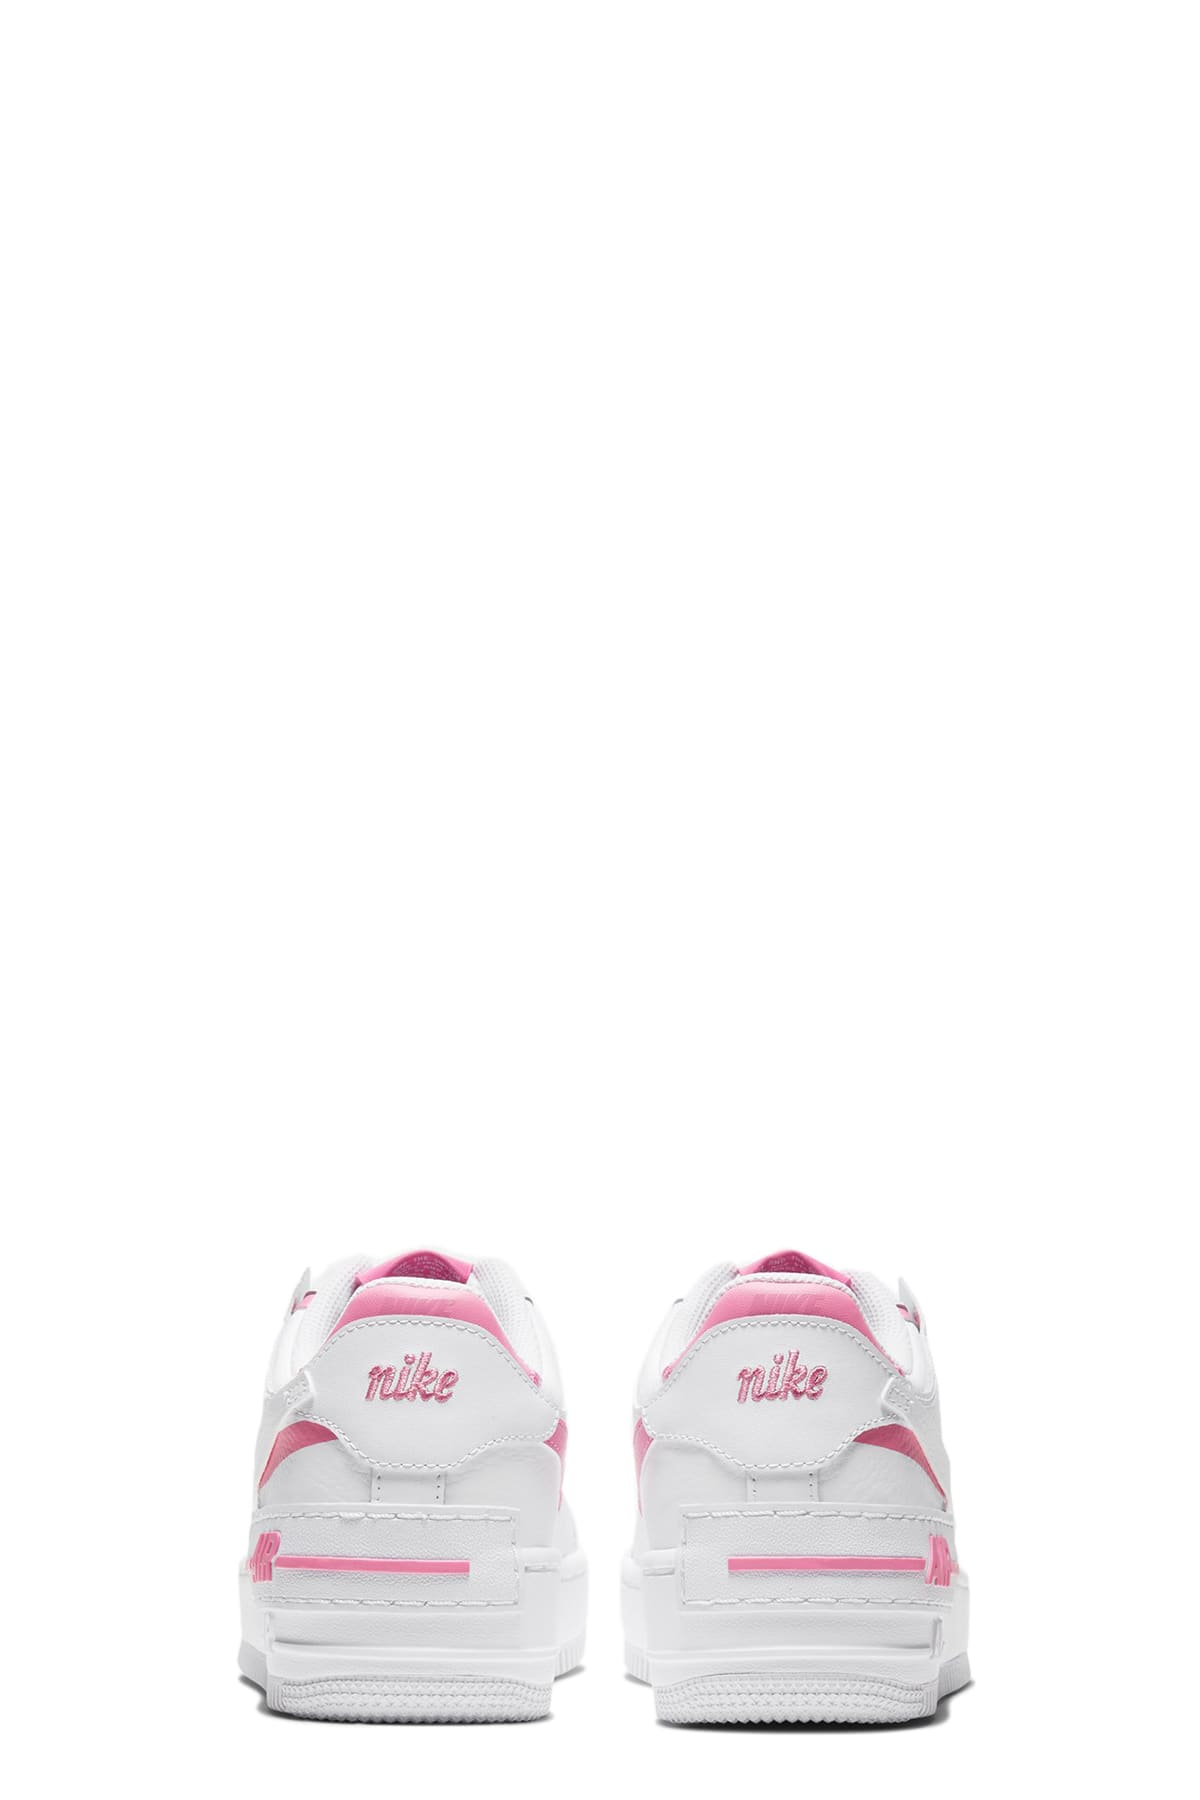 nike air force 1 bianco rosa